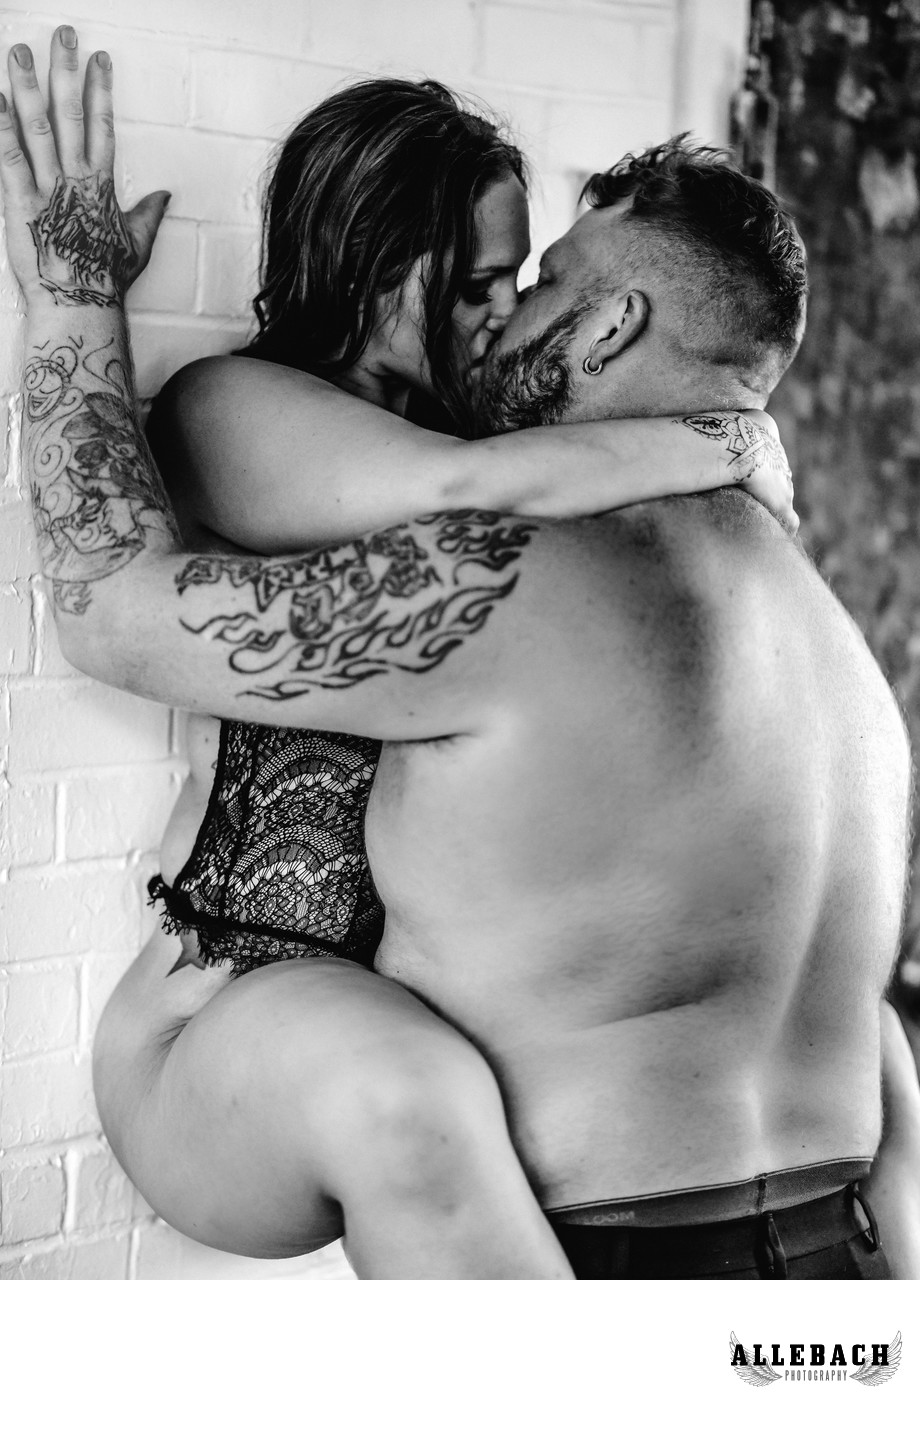 Erotic Couples Photography - Kissing on the Wall